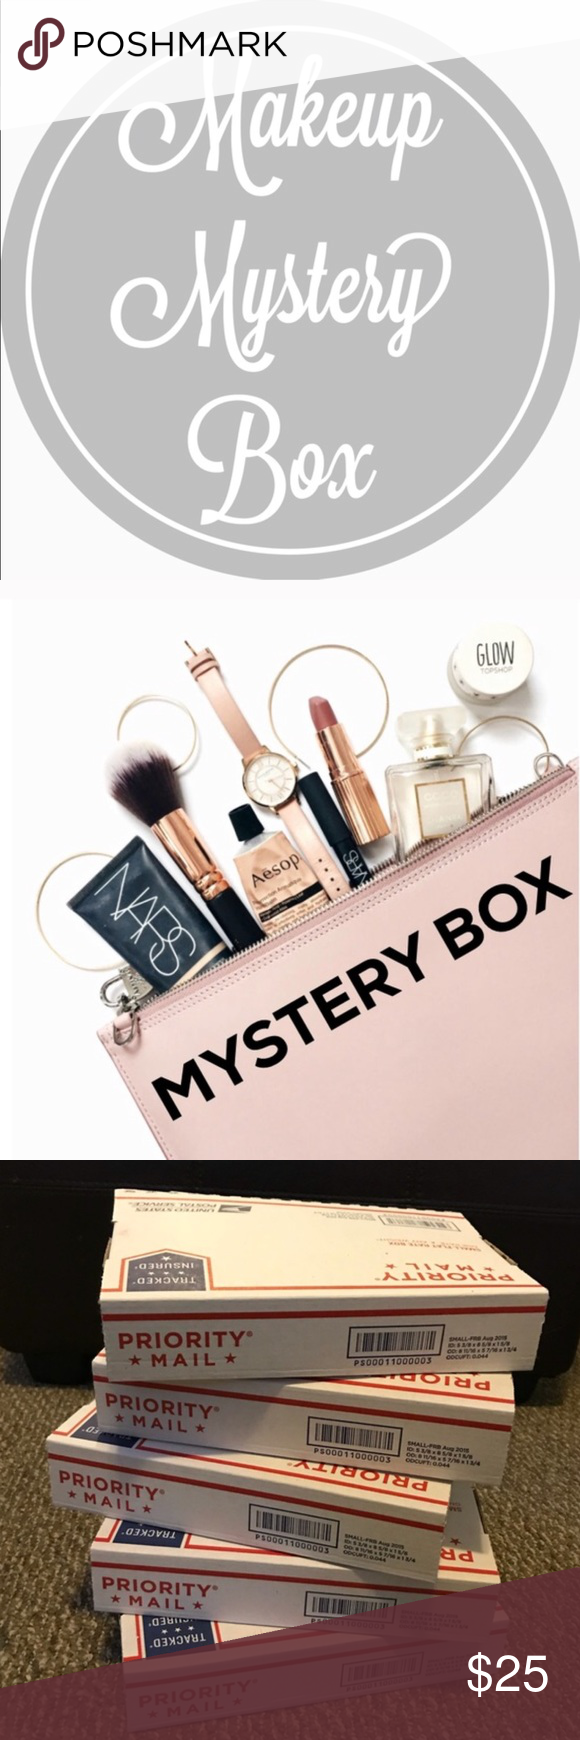 Makeup Mystery Box 🎉 Your makeup mystery box will be